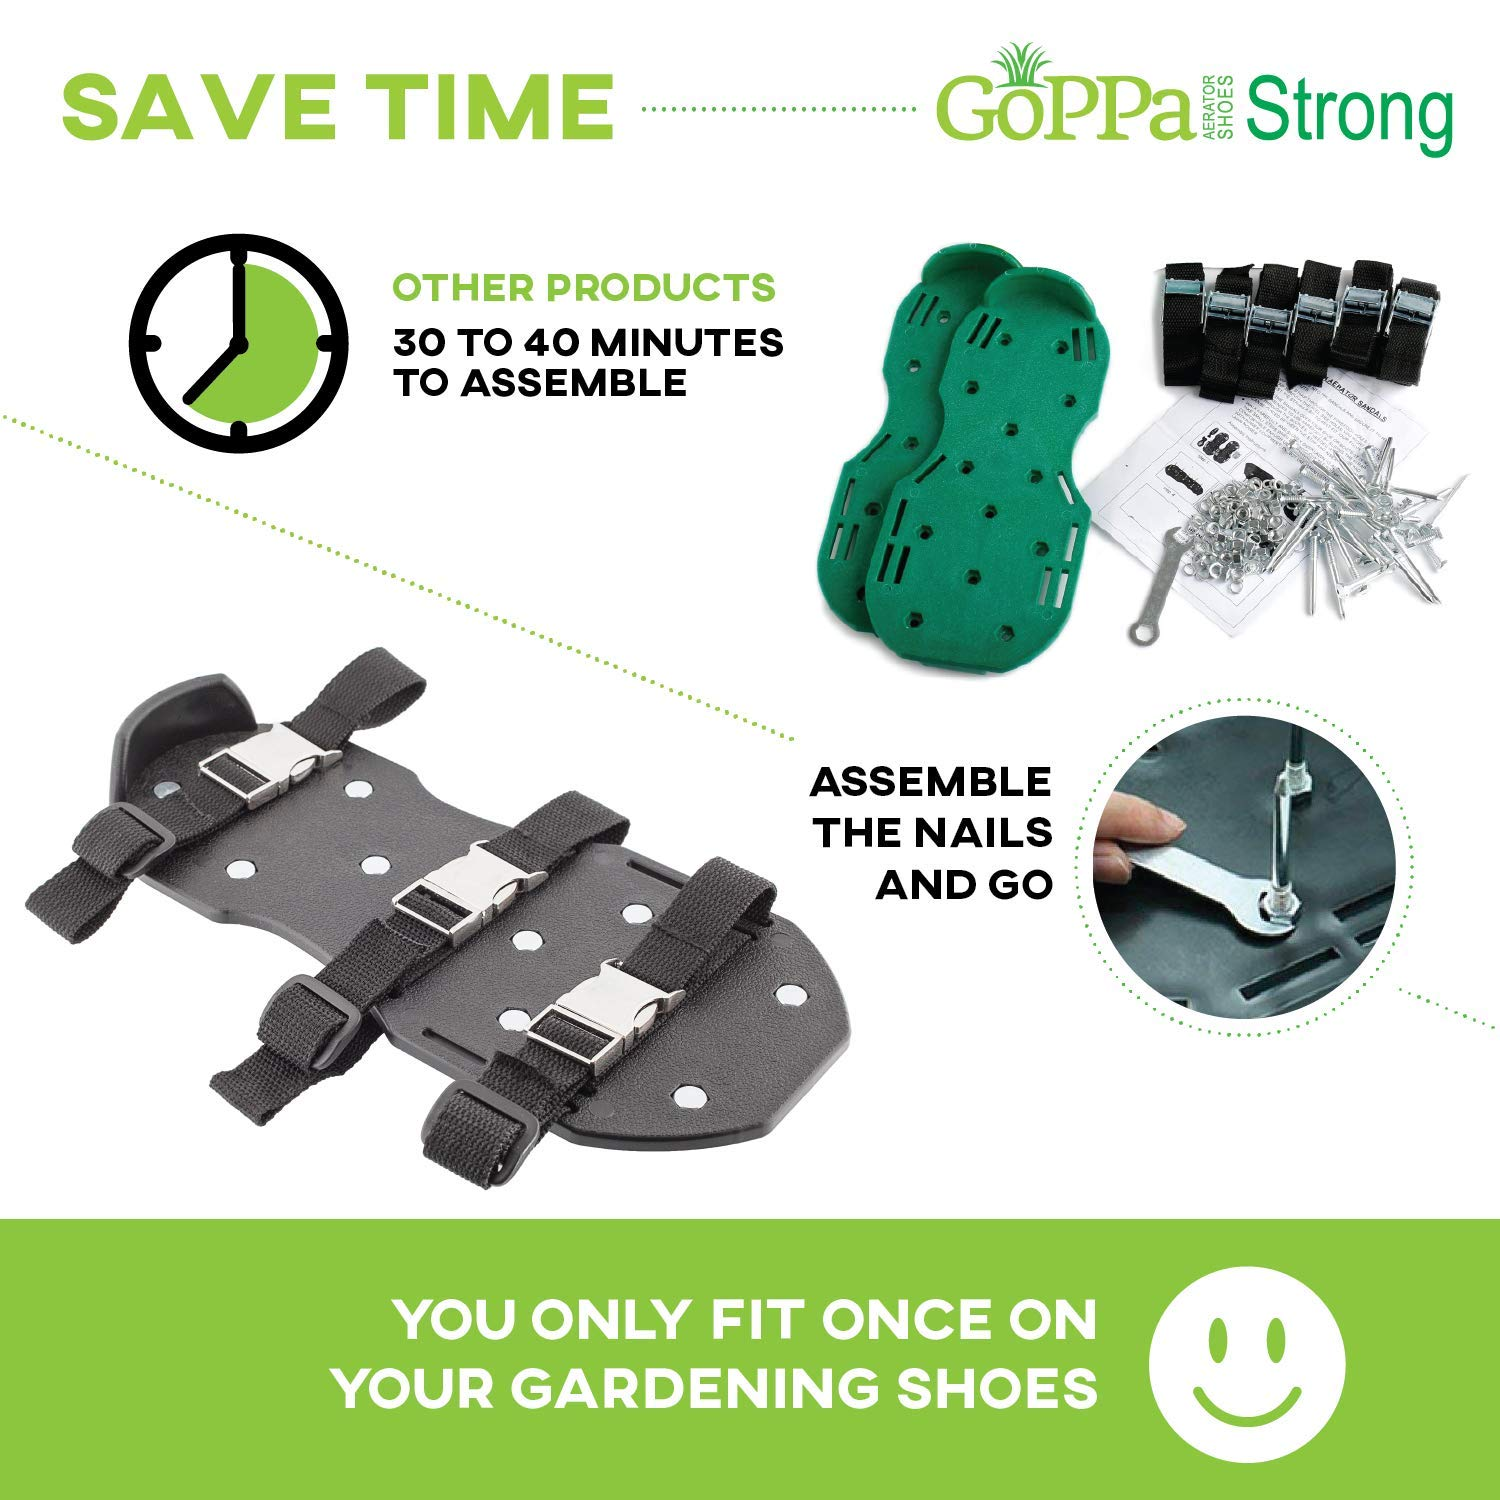 GoPPa Lawn Aerator Shoes – Heavy Duty Lawn Aerator Sandal, You only FIT Once. Ready for aerating Your Yard, Lawn, Roots & Grass – Strong Design by GoPPa (Image #5)